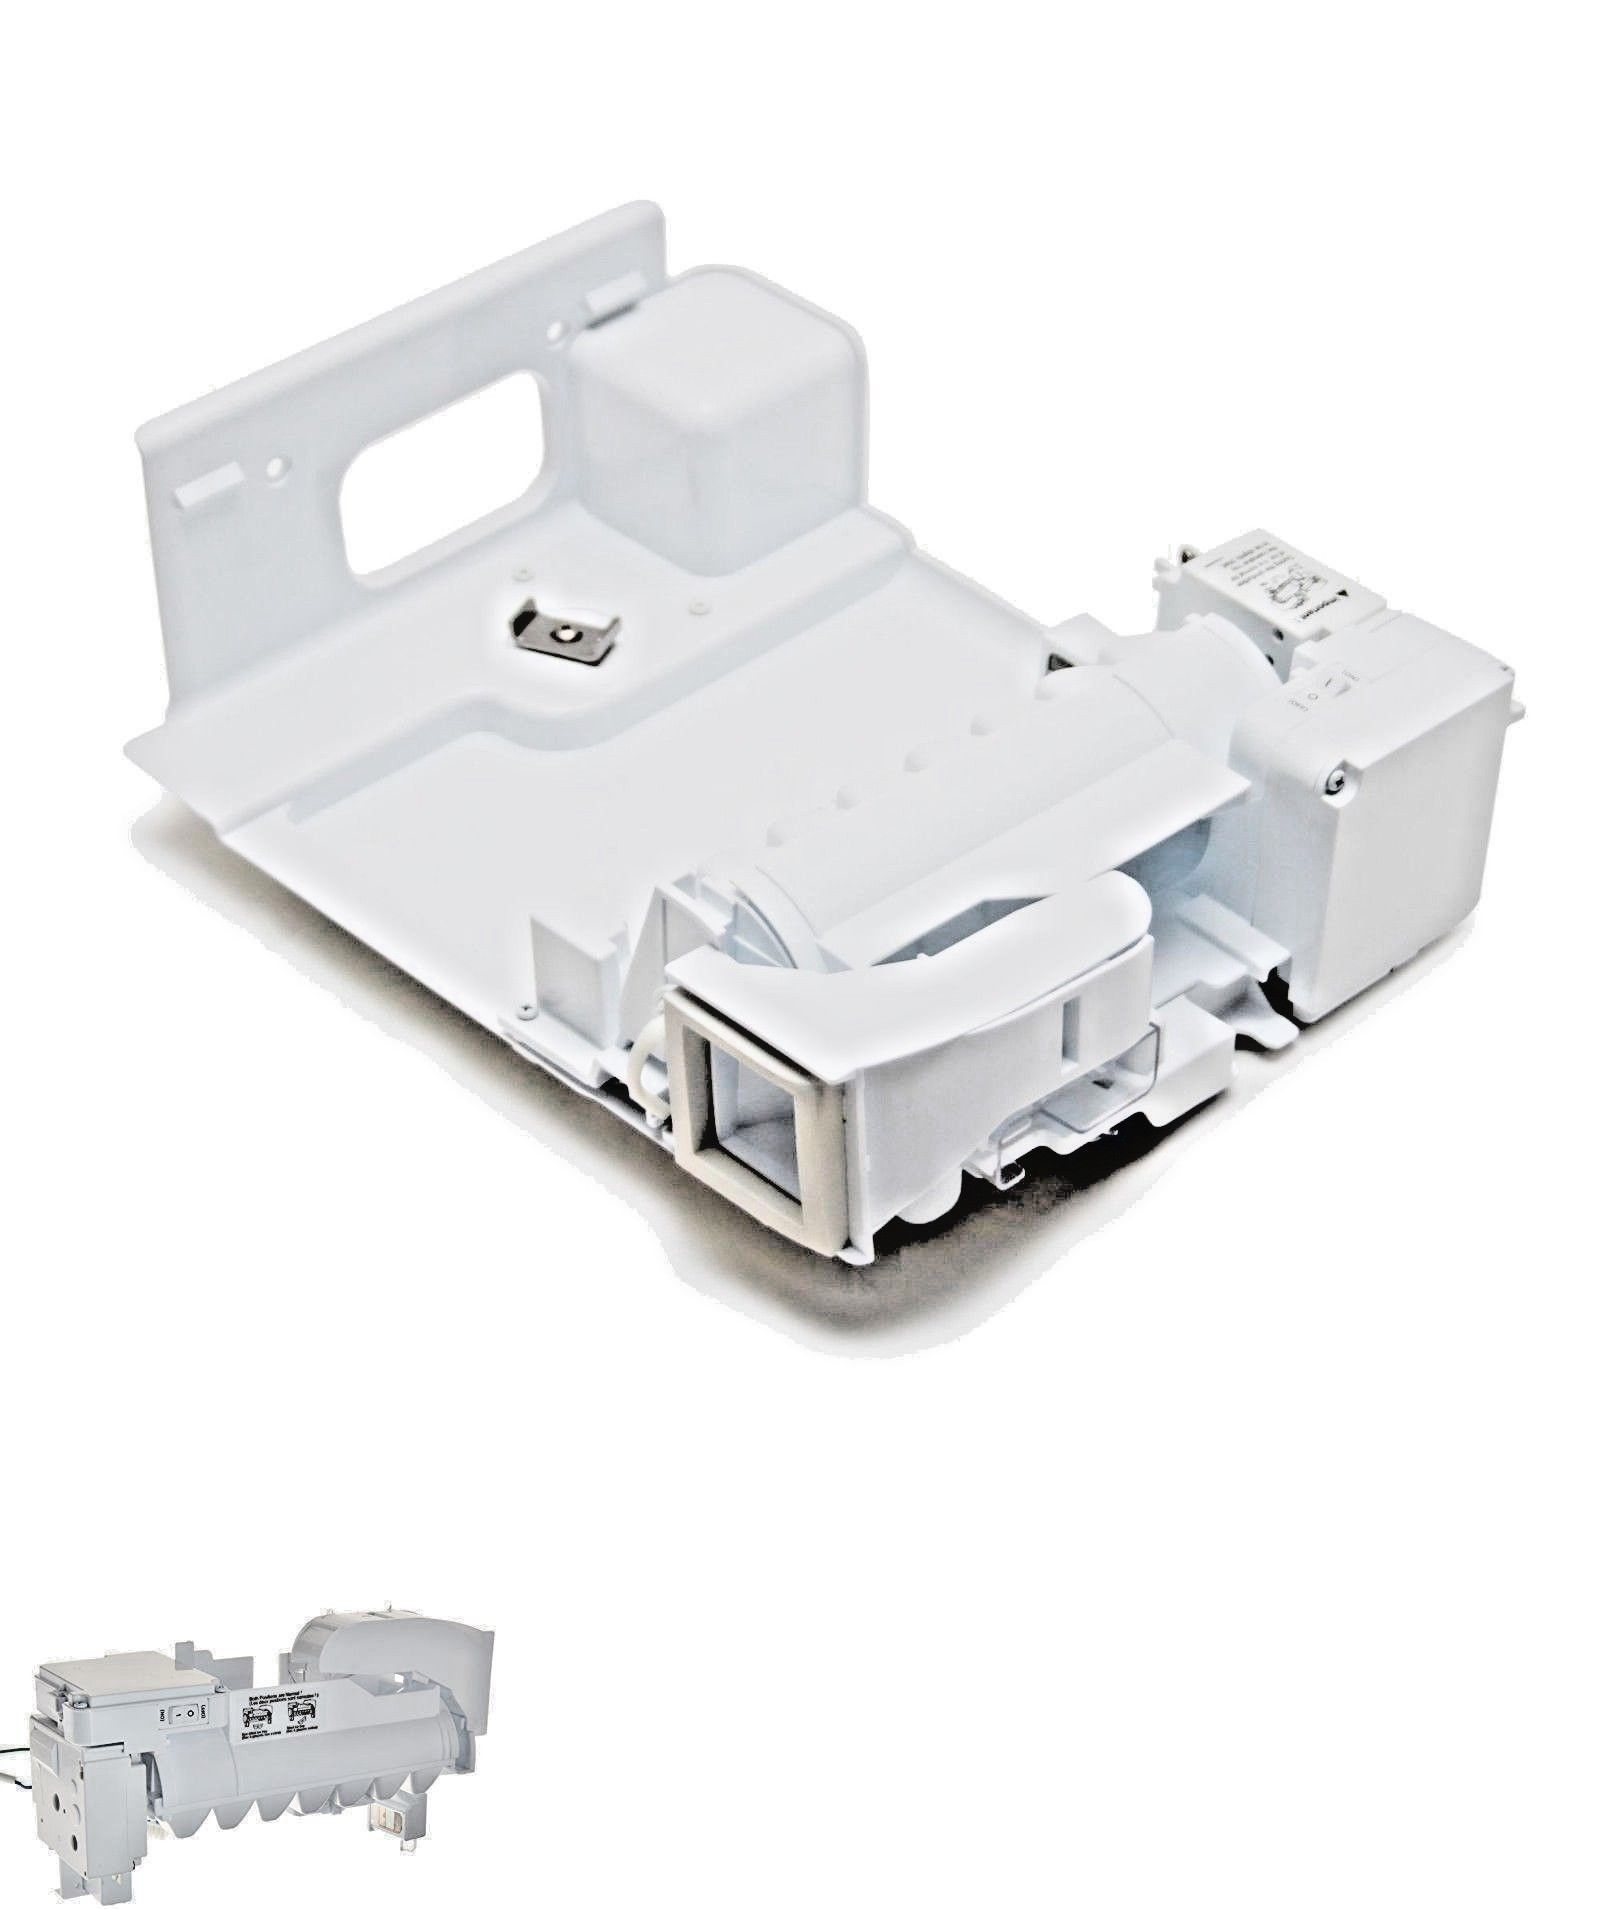 hight resolution of parts and accessories 184666 lg aeq73110210 refrigerator ice maker assembly kit with free bonus buy it now only 129 29 on ebay parts accessories